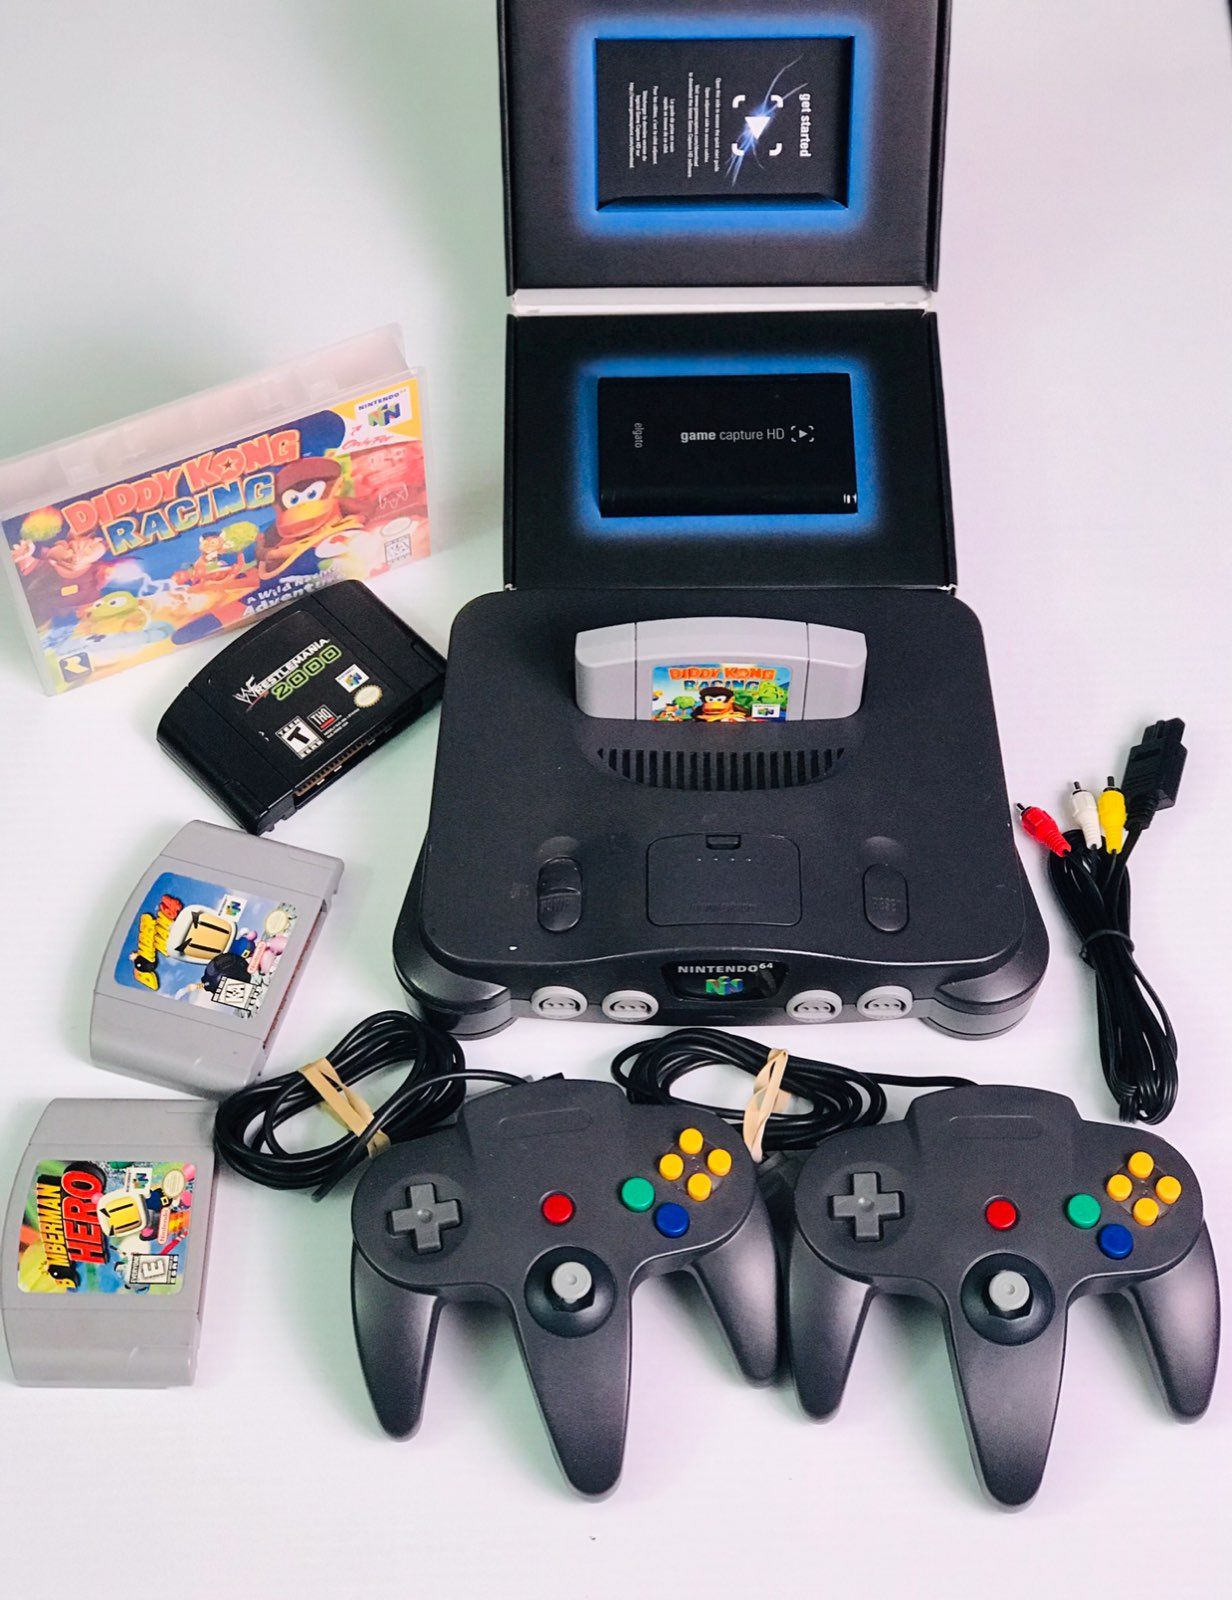 Listing Includes Elgato Game Capture Hd Stream Older Games Elgato Comes In Authentic Box With Cables Nintendo 64 S Nintendo 64 Elgato Game Capture Old Games